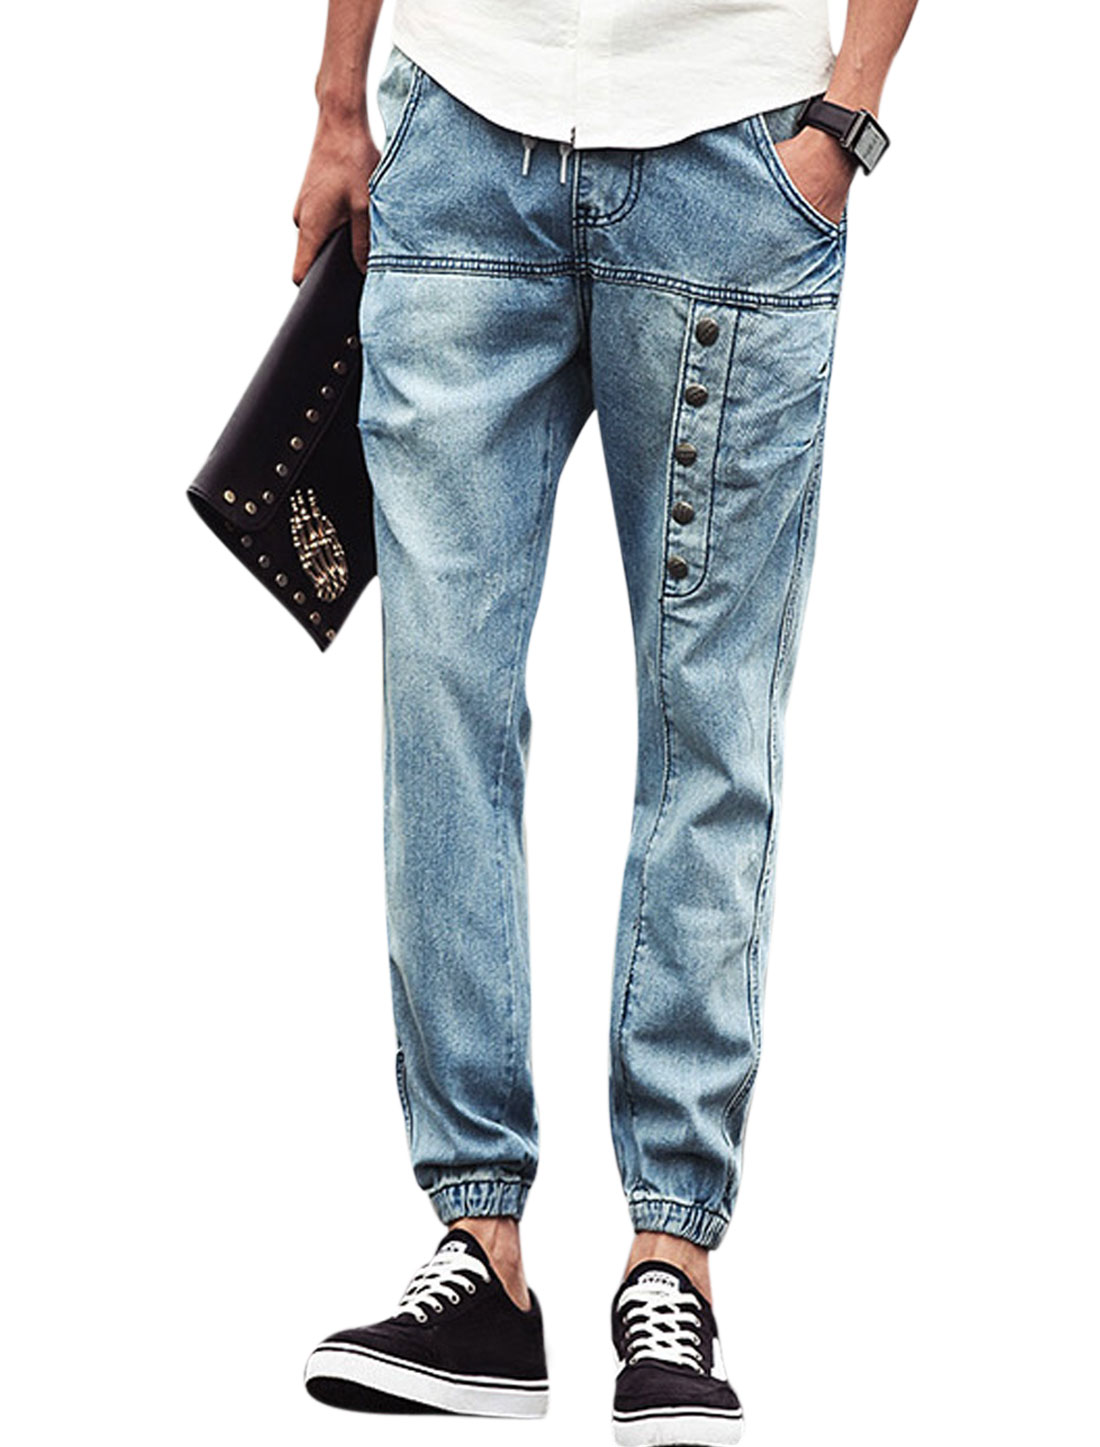 Men Mid Rise Drawstring Waist Pockets Casual Cropped Jeans Sky Blue W30